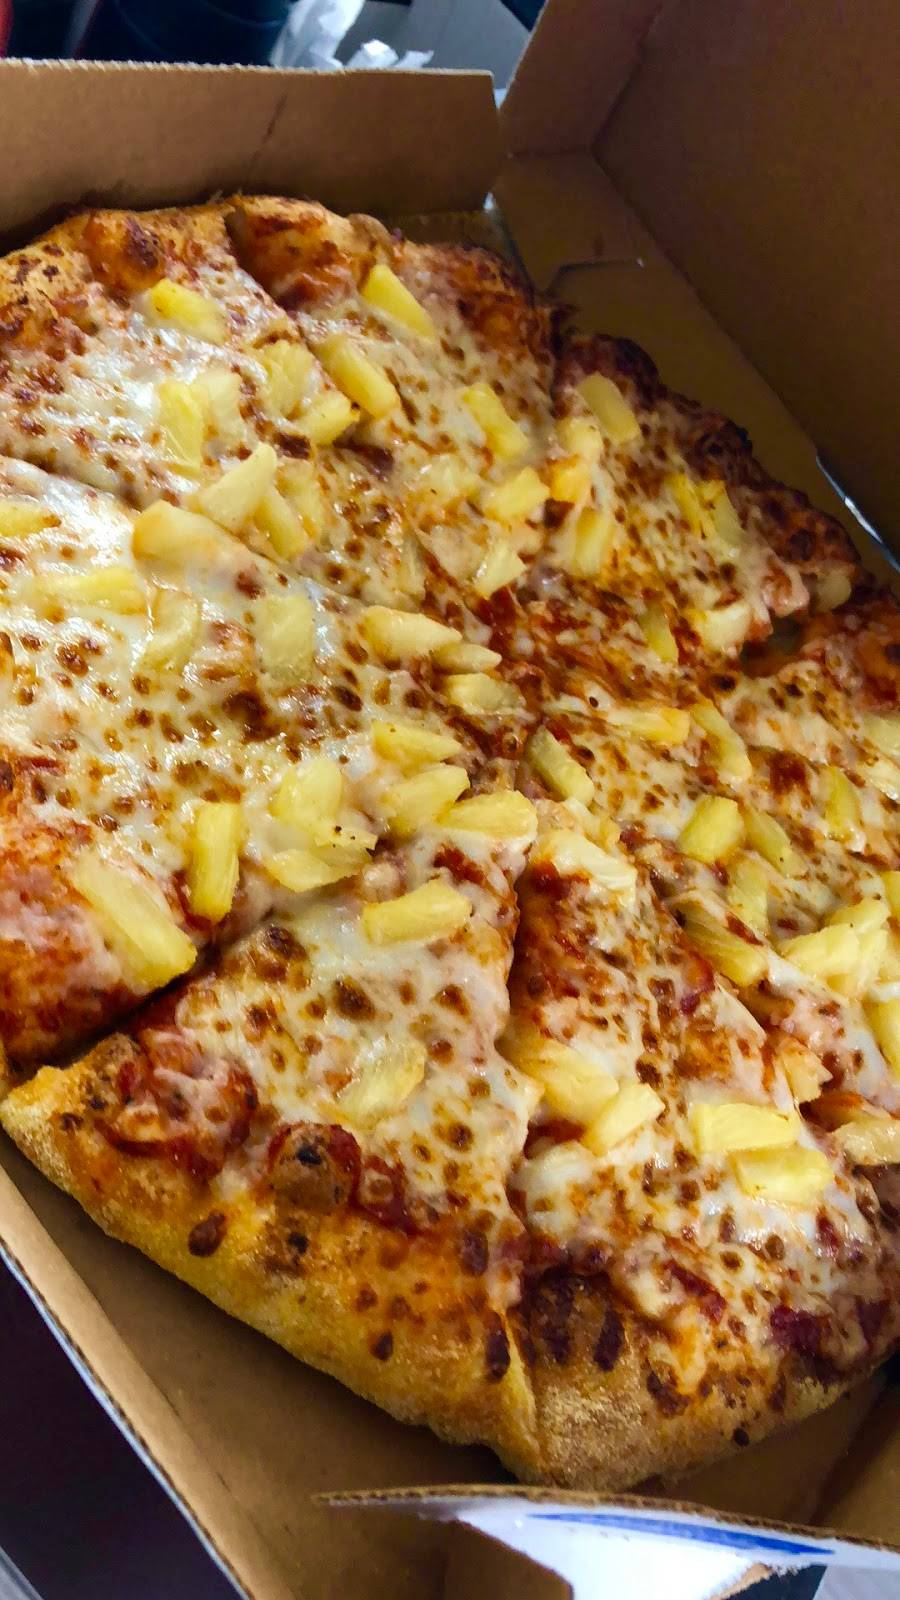 Dominos Pizza   meal delivery   7802 Jamaica Ave, Woodhaven, NY 11421, USA   7182960303 OR +1 718-296-0303